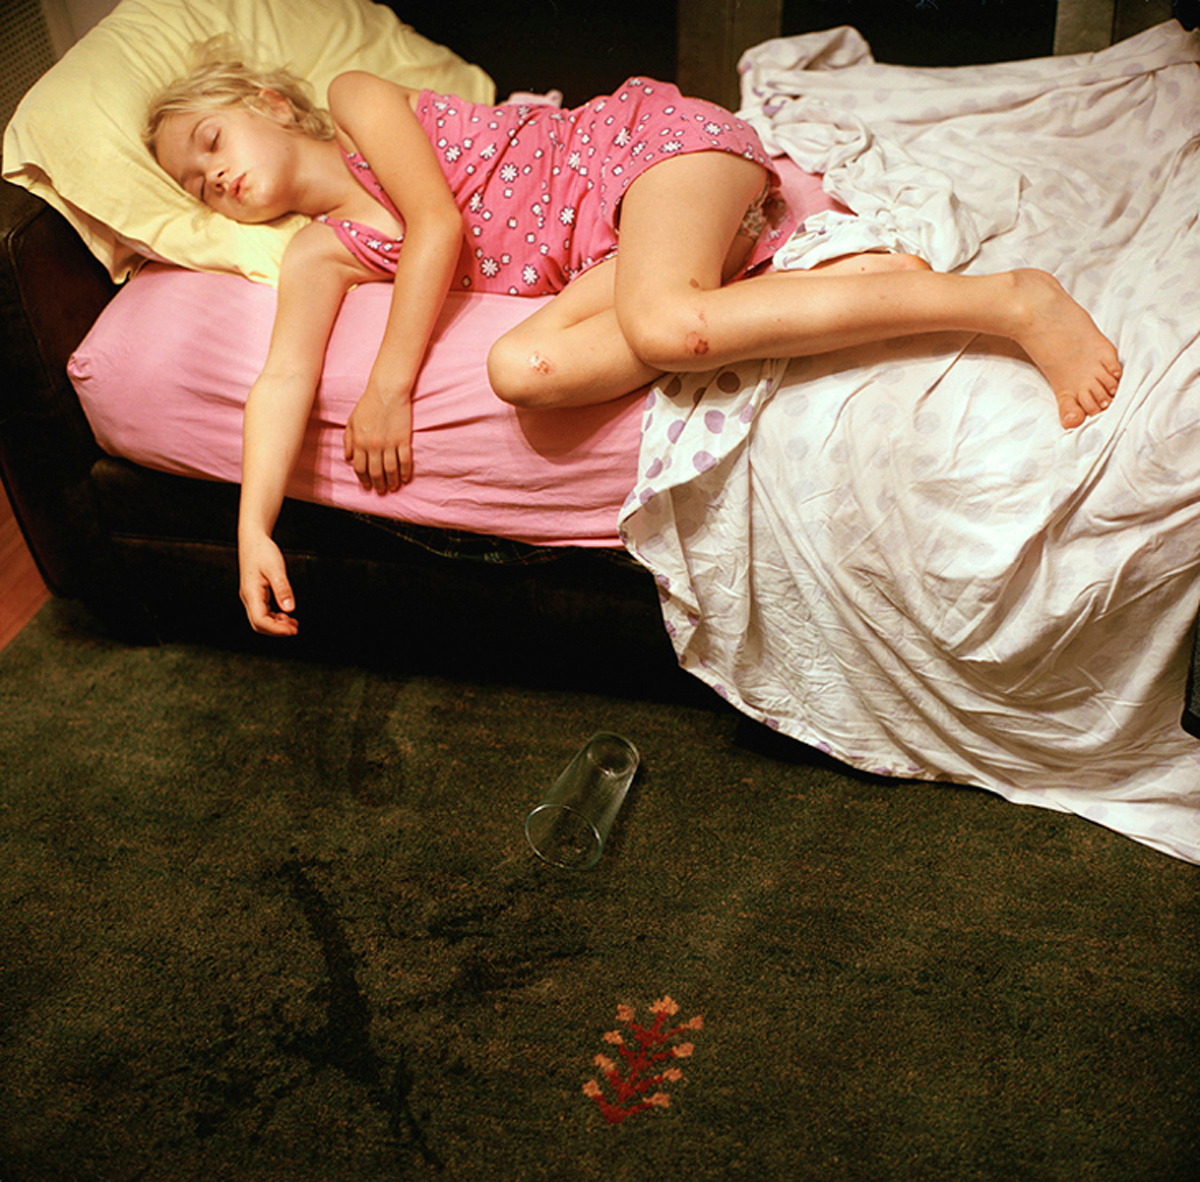 Rebecca Soderholm     Emma and Water Glass, New Haven, CT,  2005    Inkjet print, edition of 7    22 x 22 inches